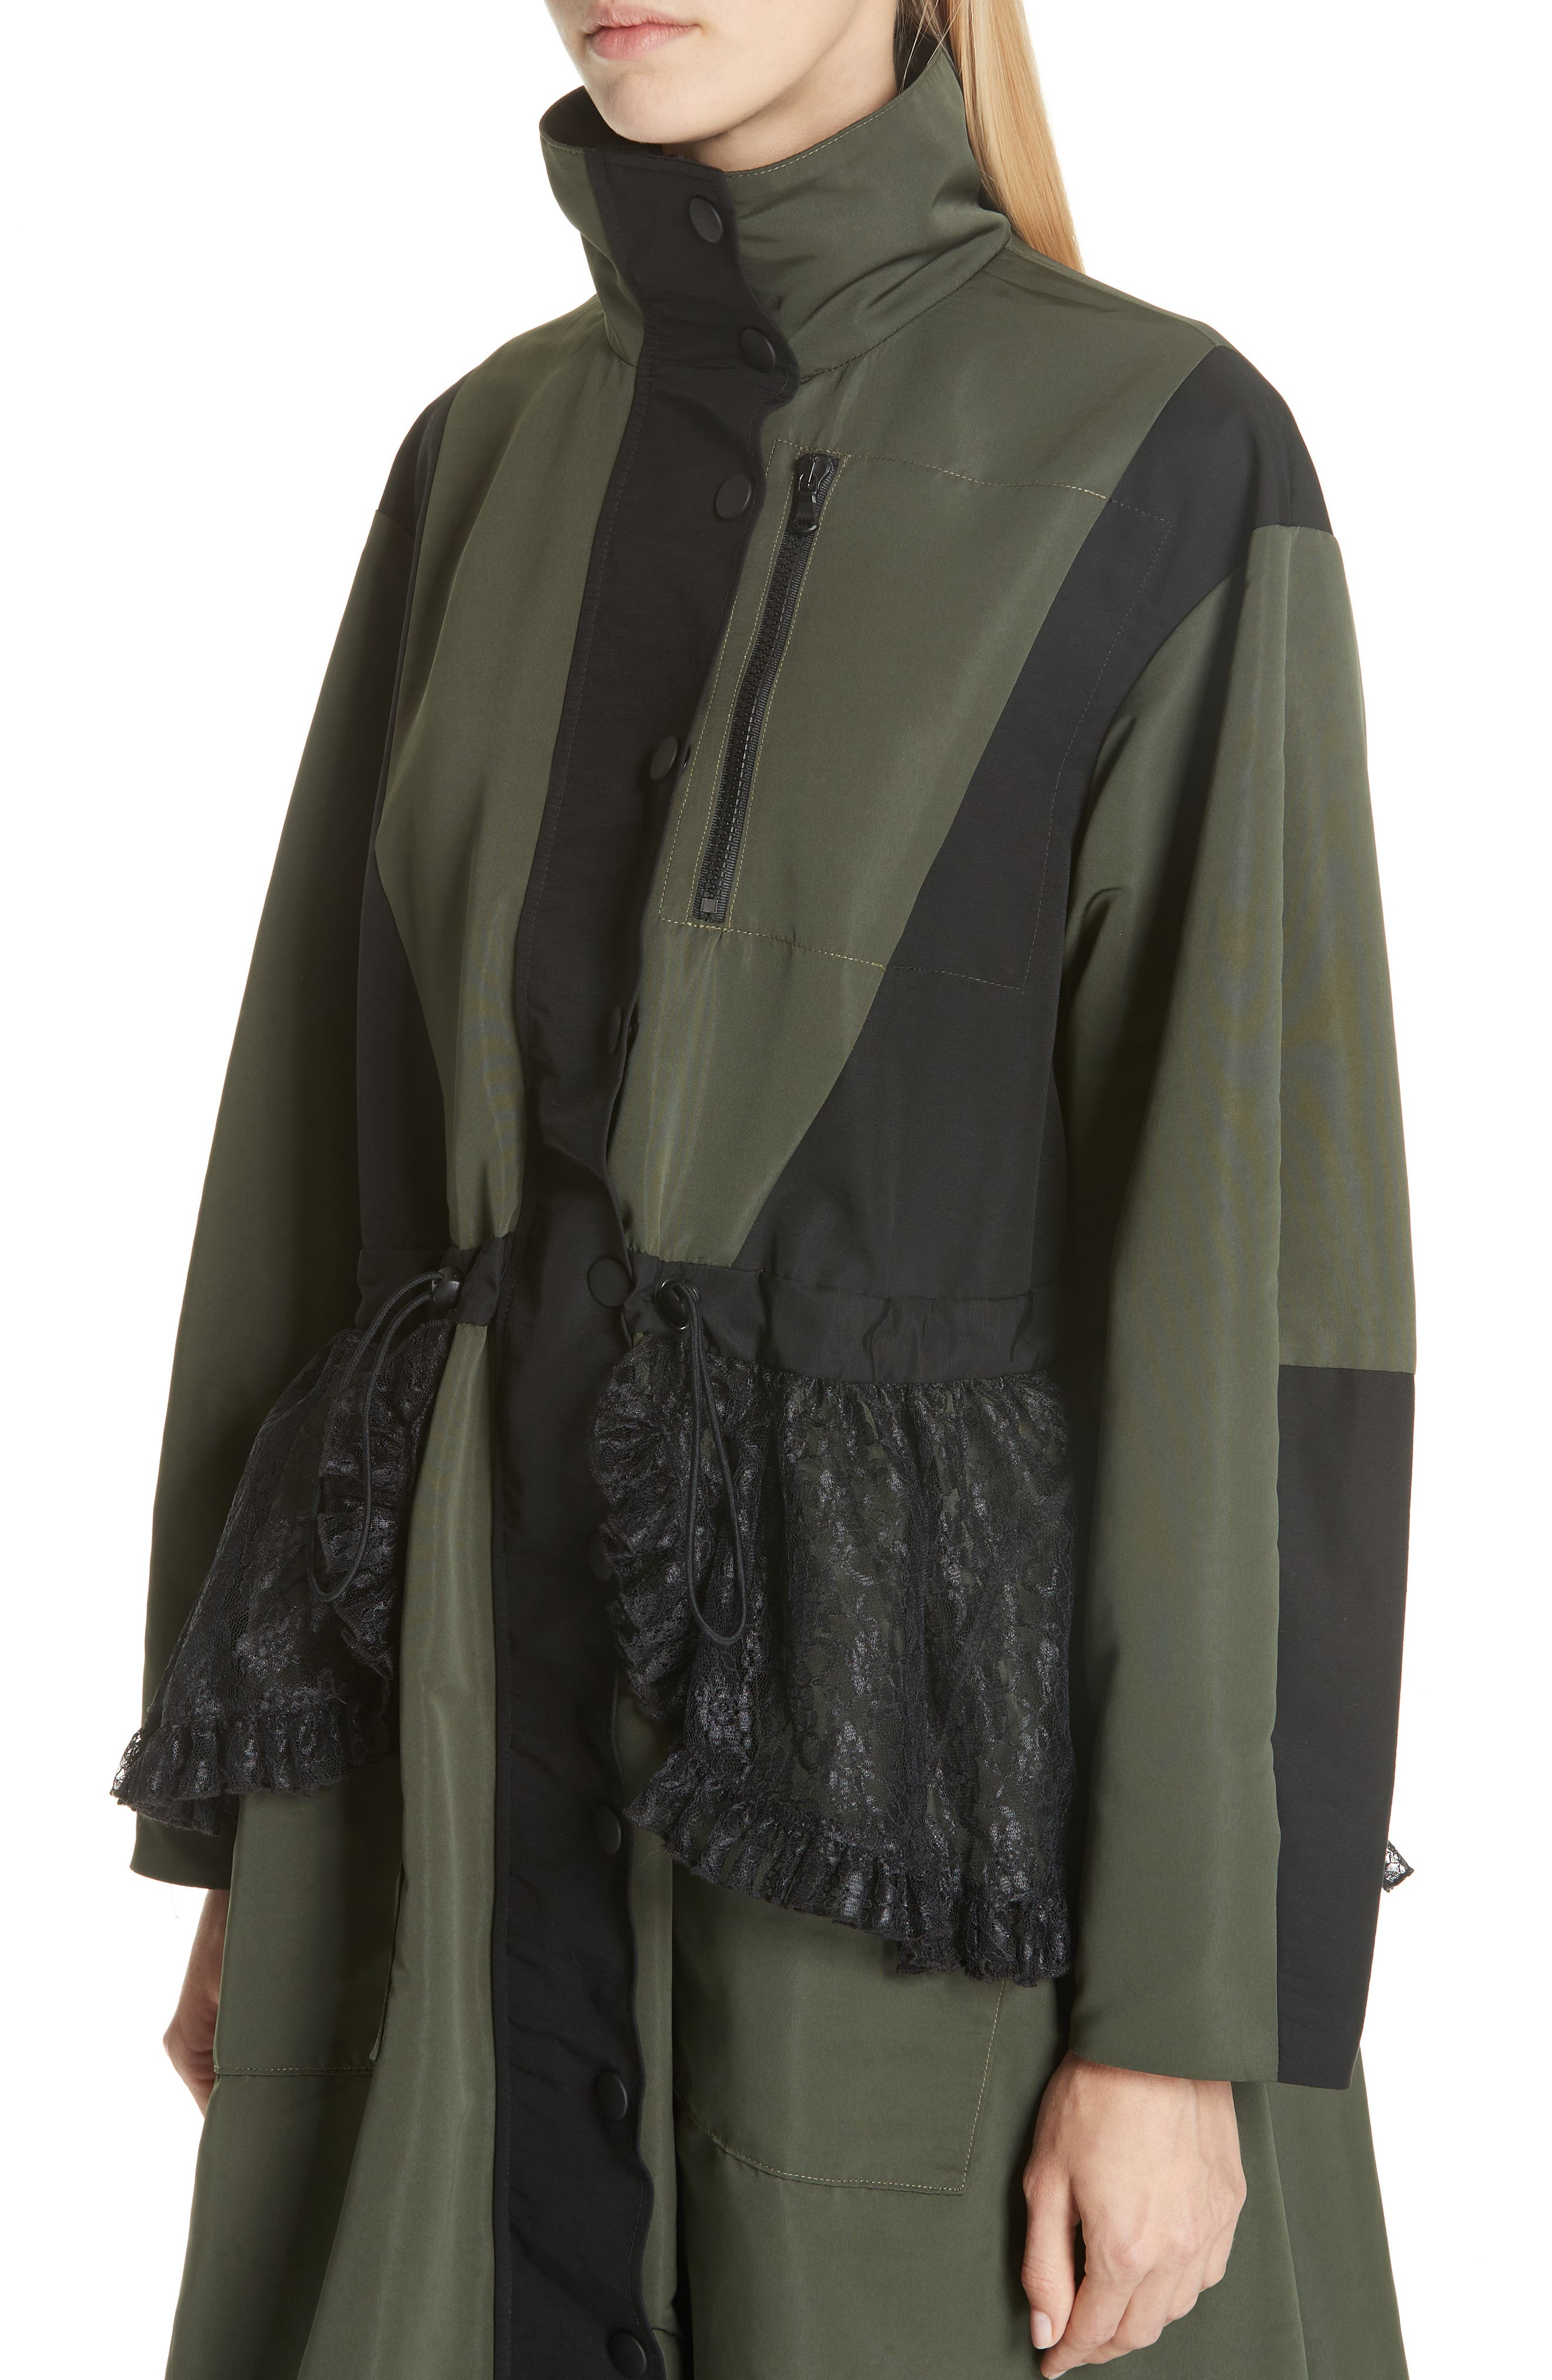 Lace Overlay Hooded Coat,                             Alternate thumbnail 2, color,                             300